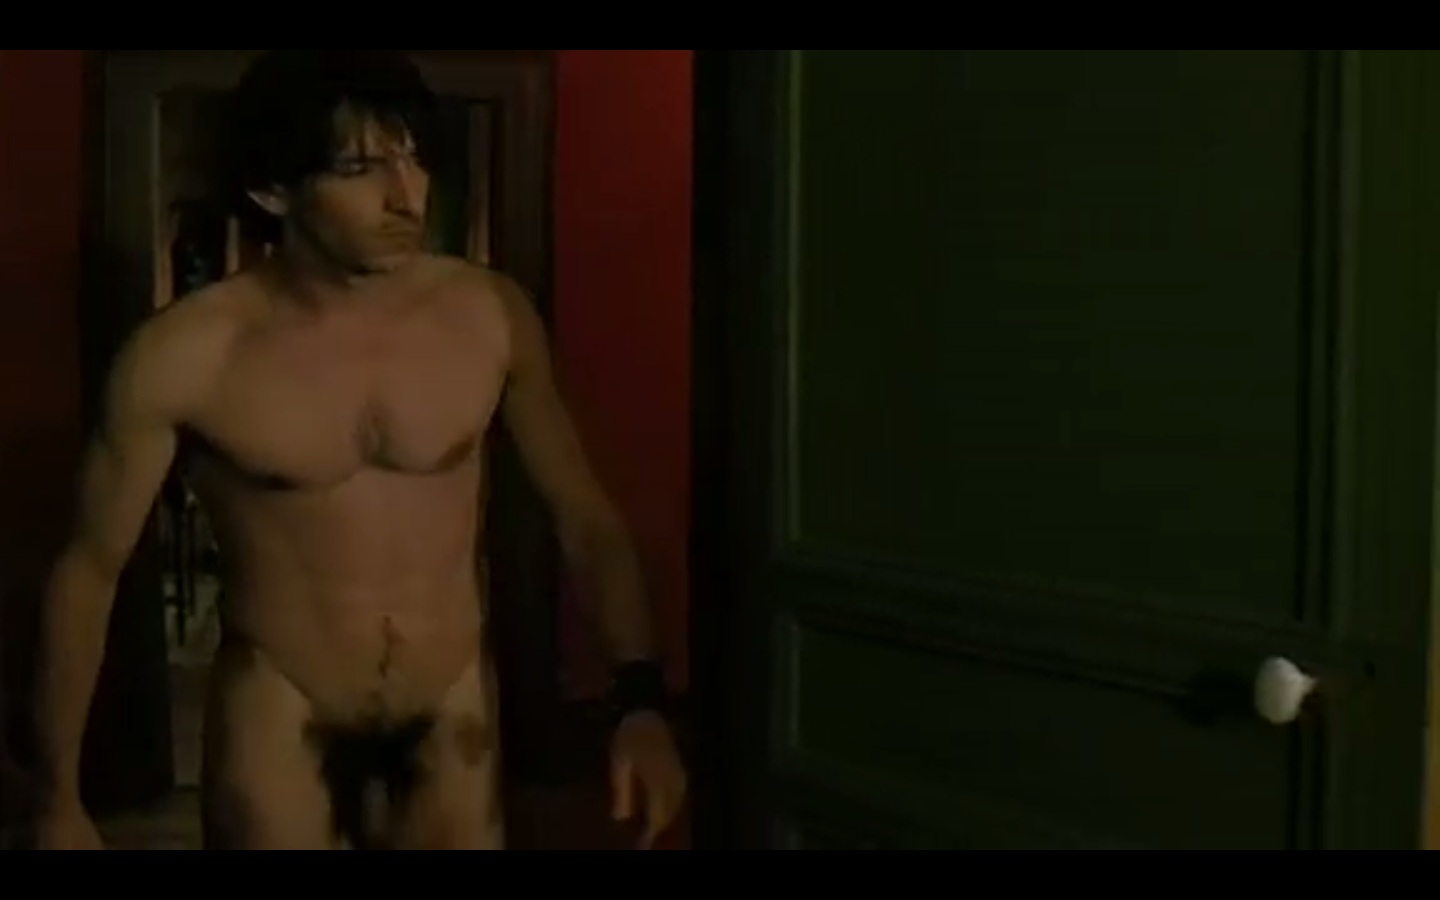 372 le matin betty blue opening sex scene 6